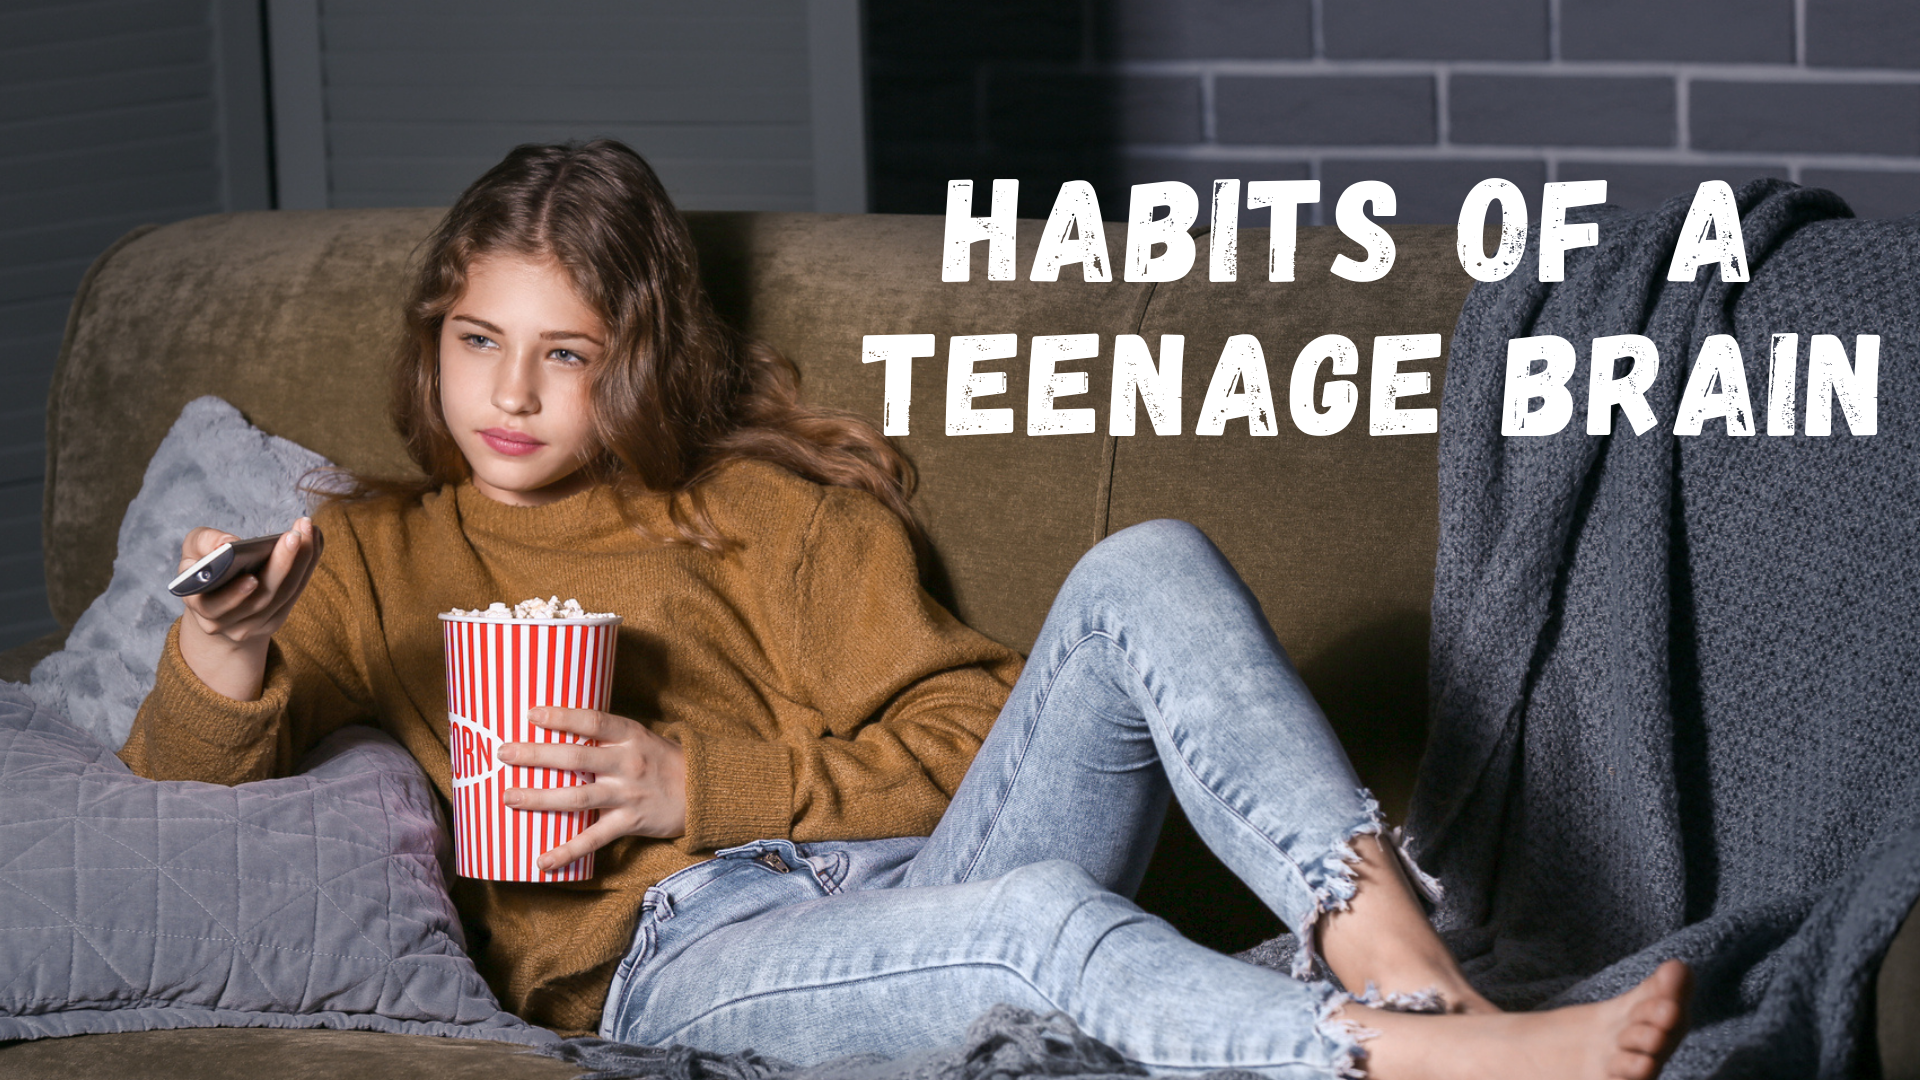 Habits of a Teenage Brain Online Course